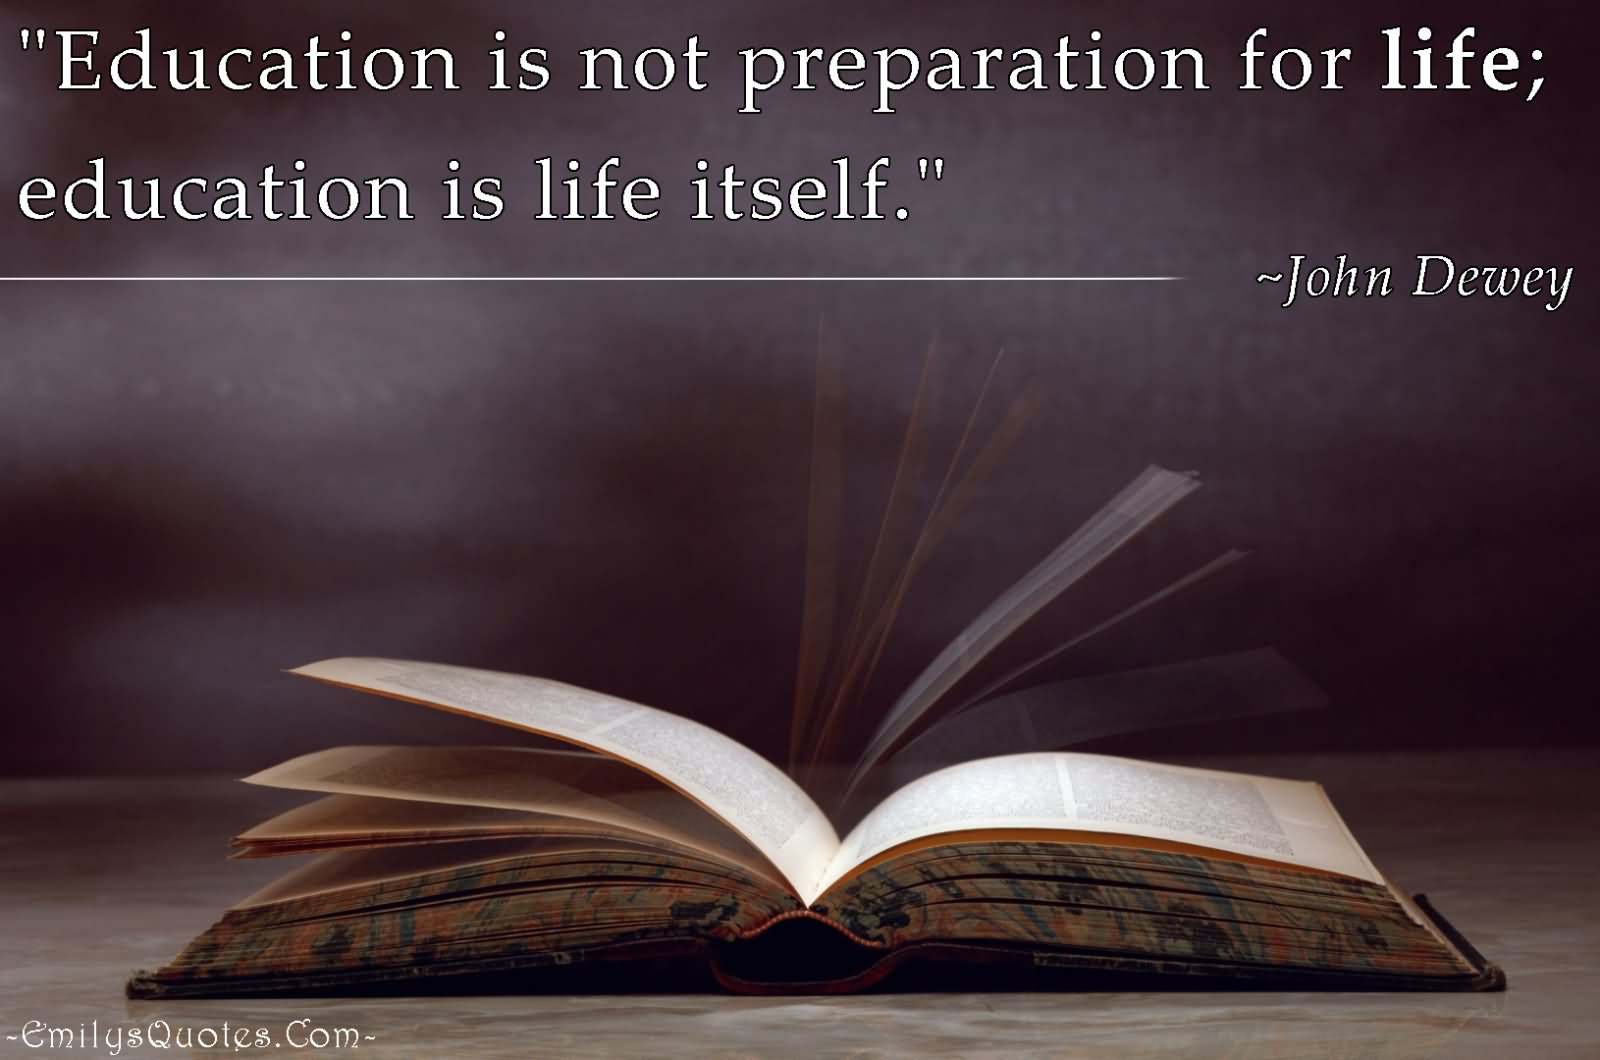 Education And Life Quotes Education Is Not Preparation For Life Education Is Life Itself.